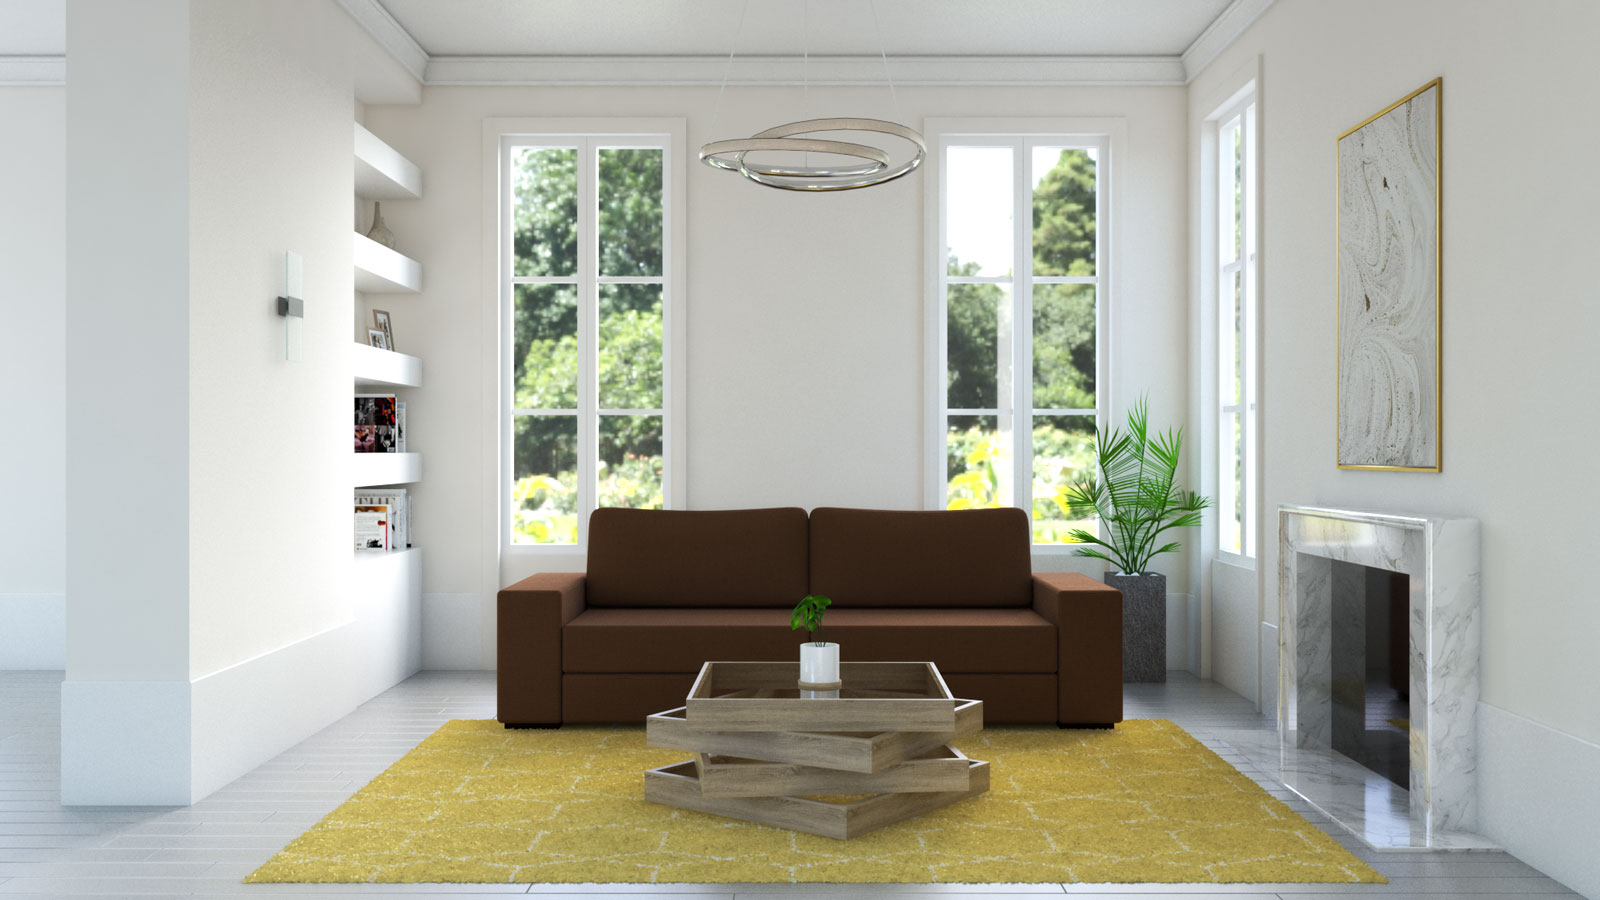 yellow and white hexagonal rug with brown couch